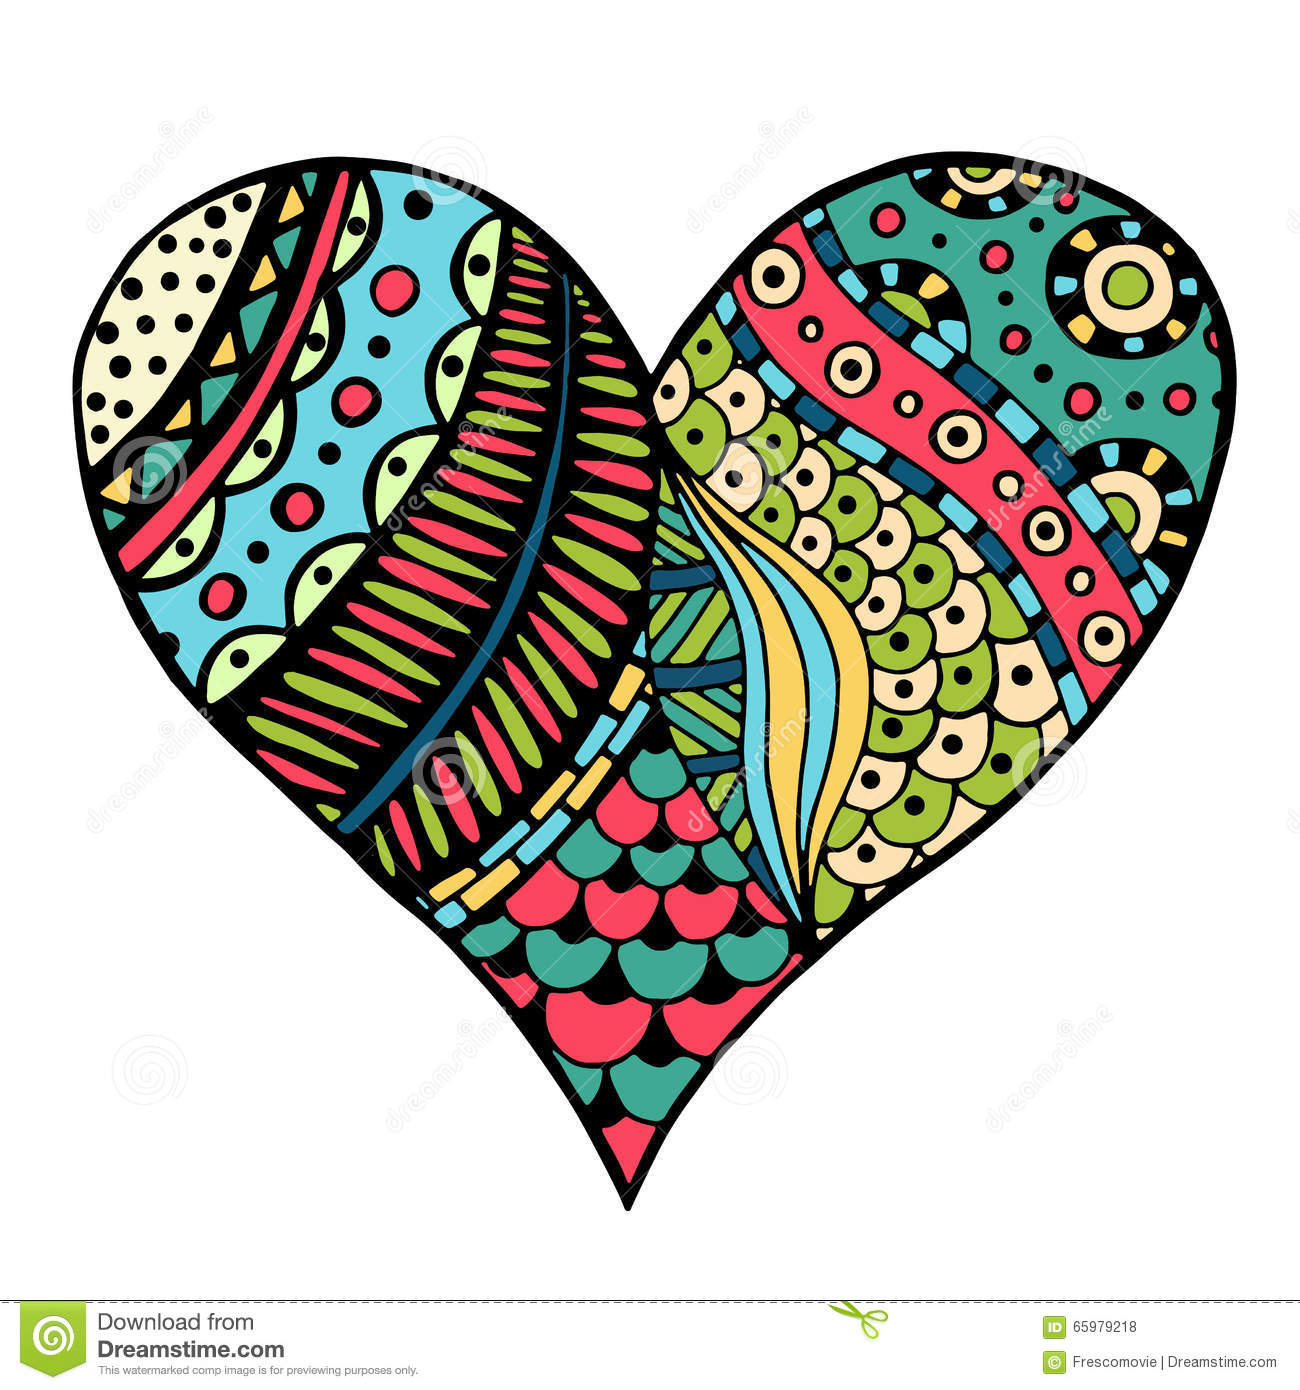 509 best images about Zendoodle hearts on Pinterest ... |Zentangle Heart Graphics